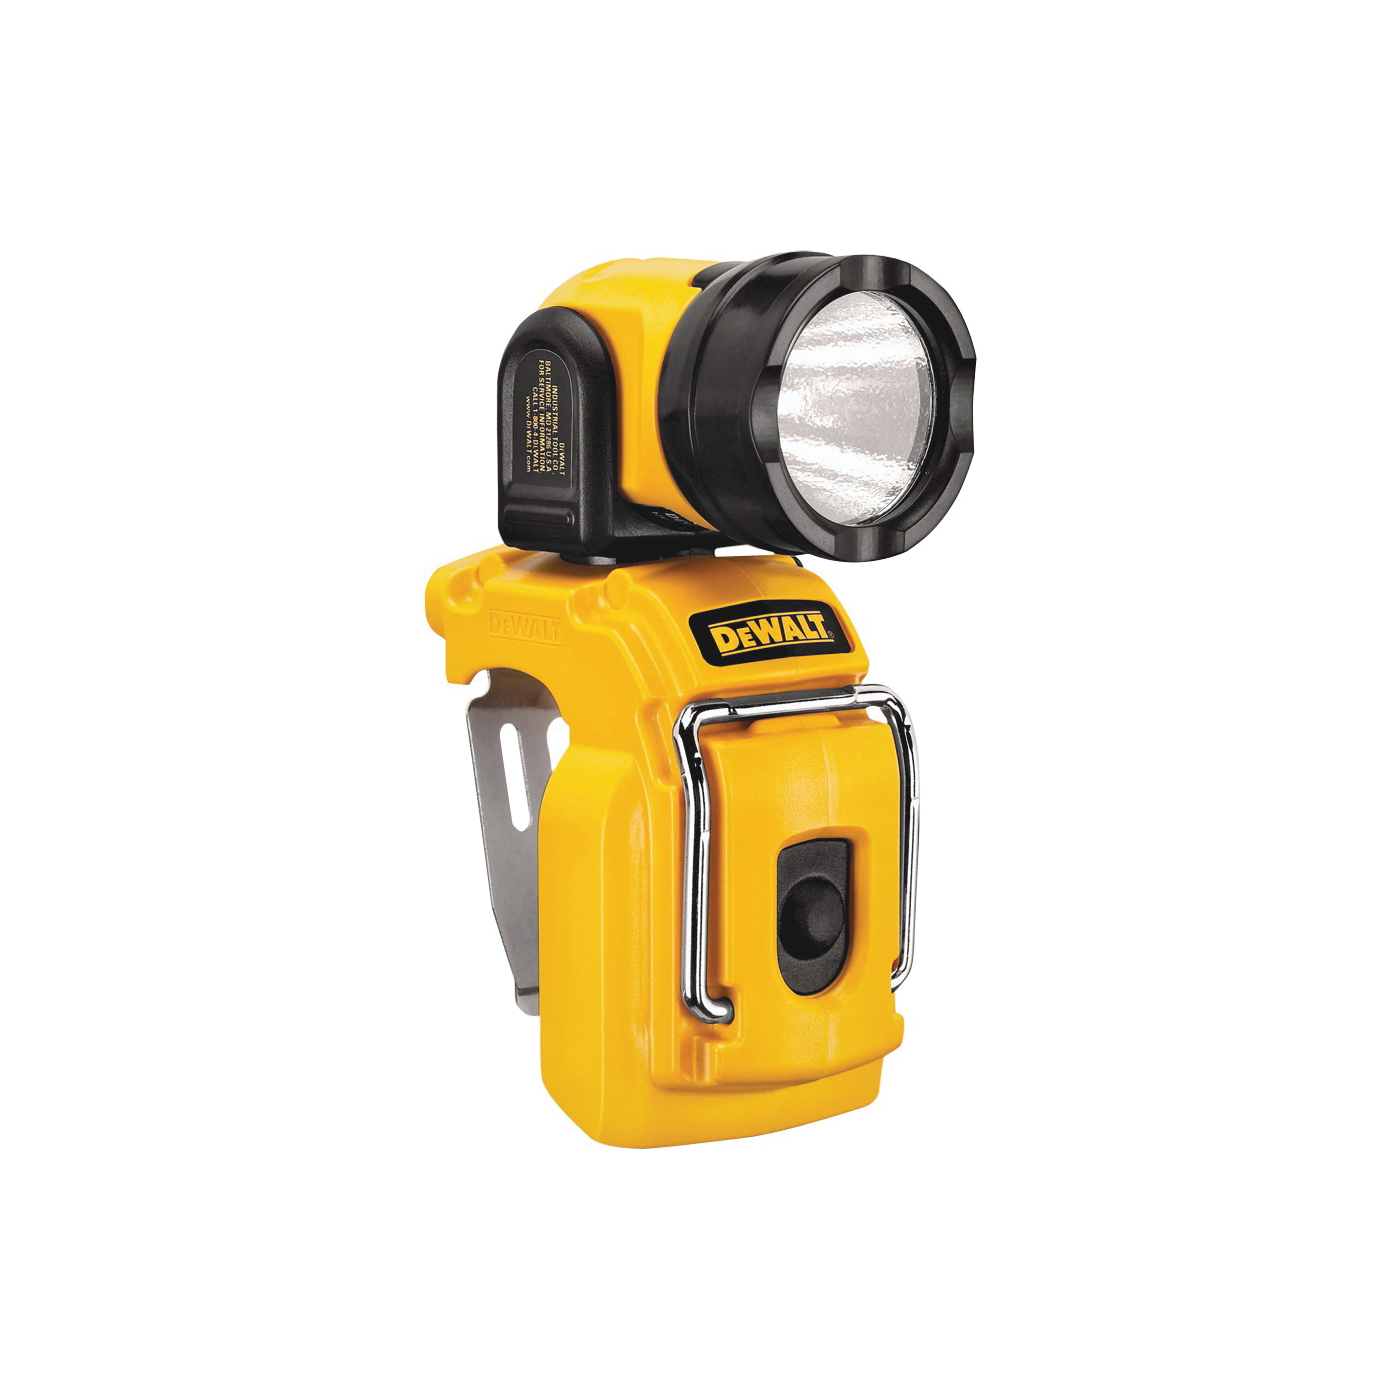 Picture of DeWALT DCL510 Work Light, 12 V, 3 W, LED Lamp, 101 to 500 Lumens